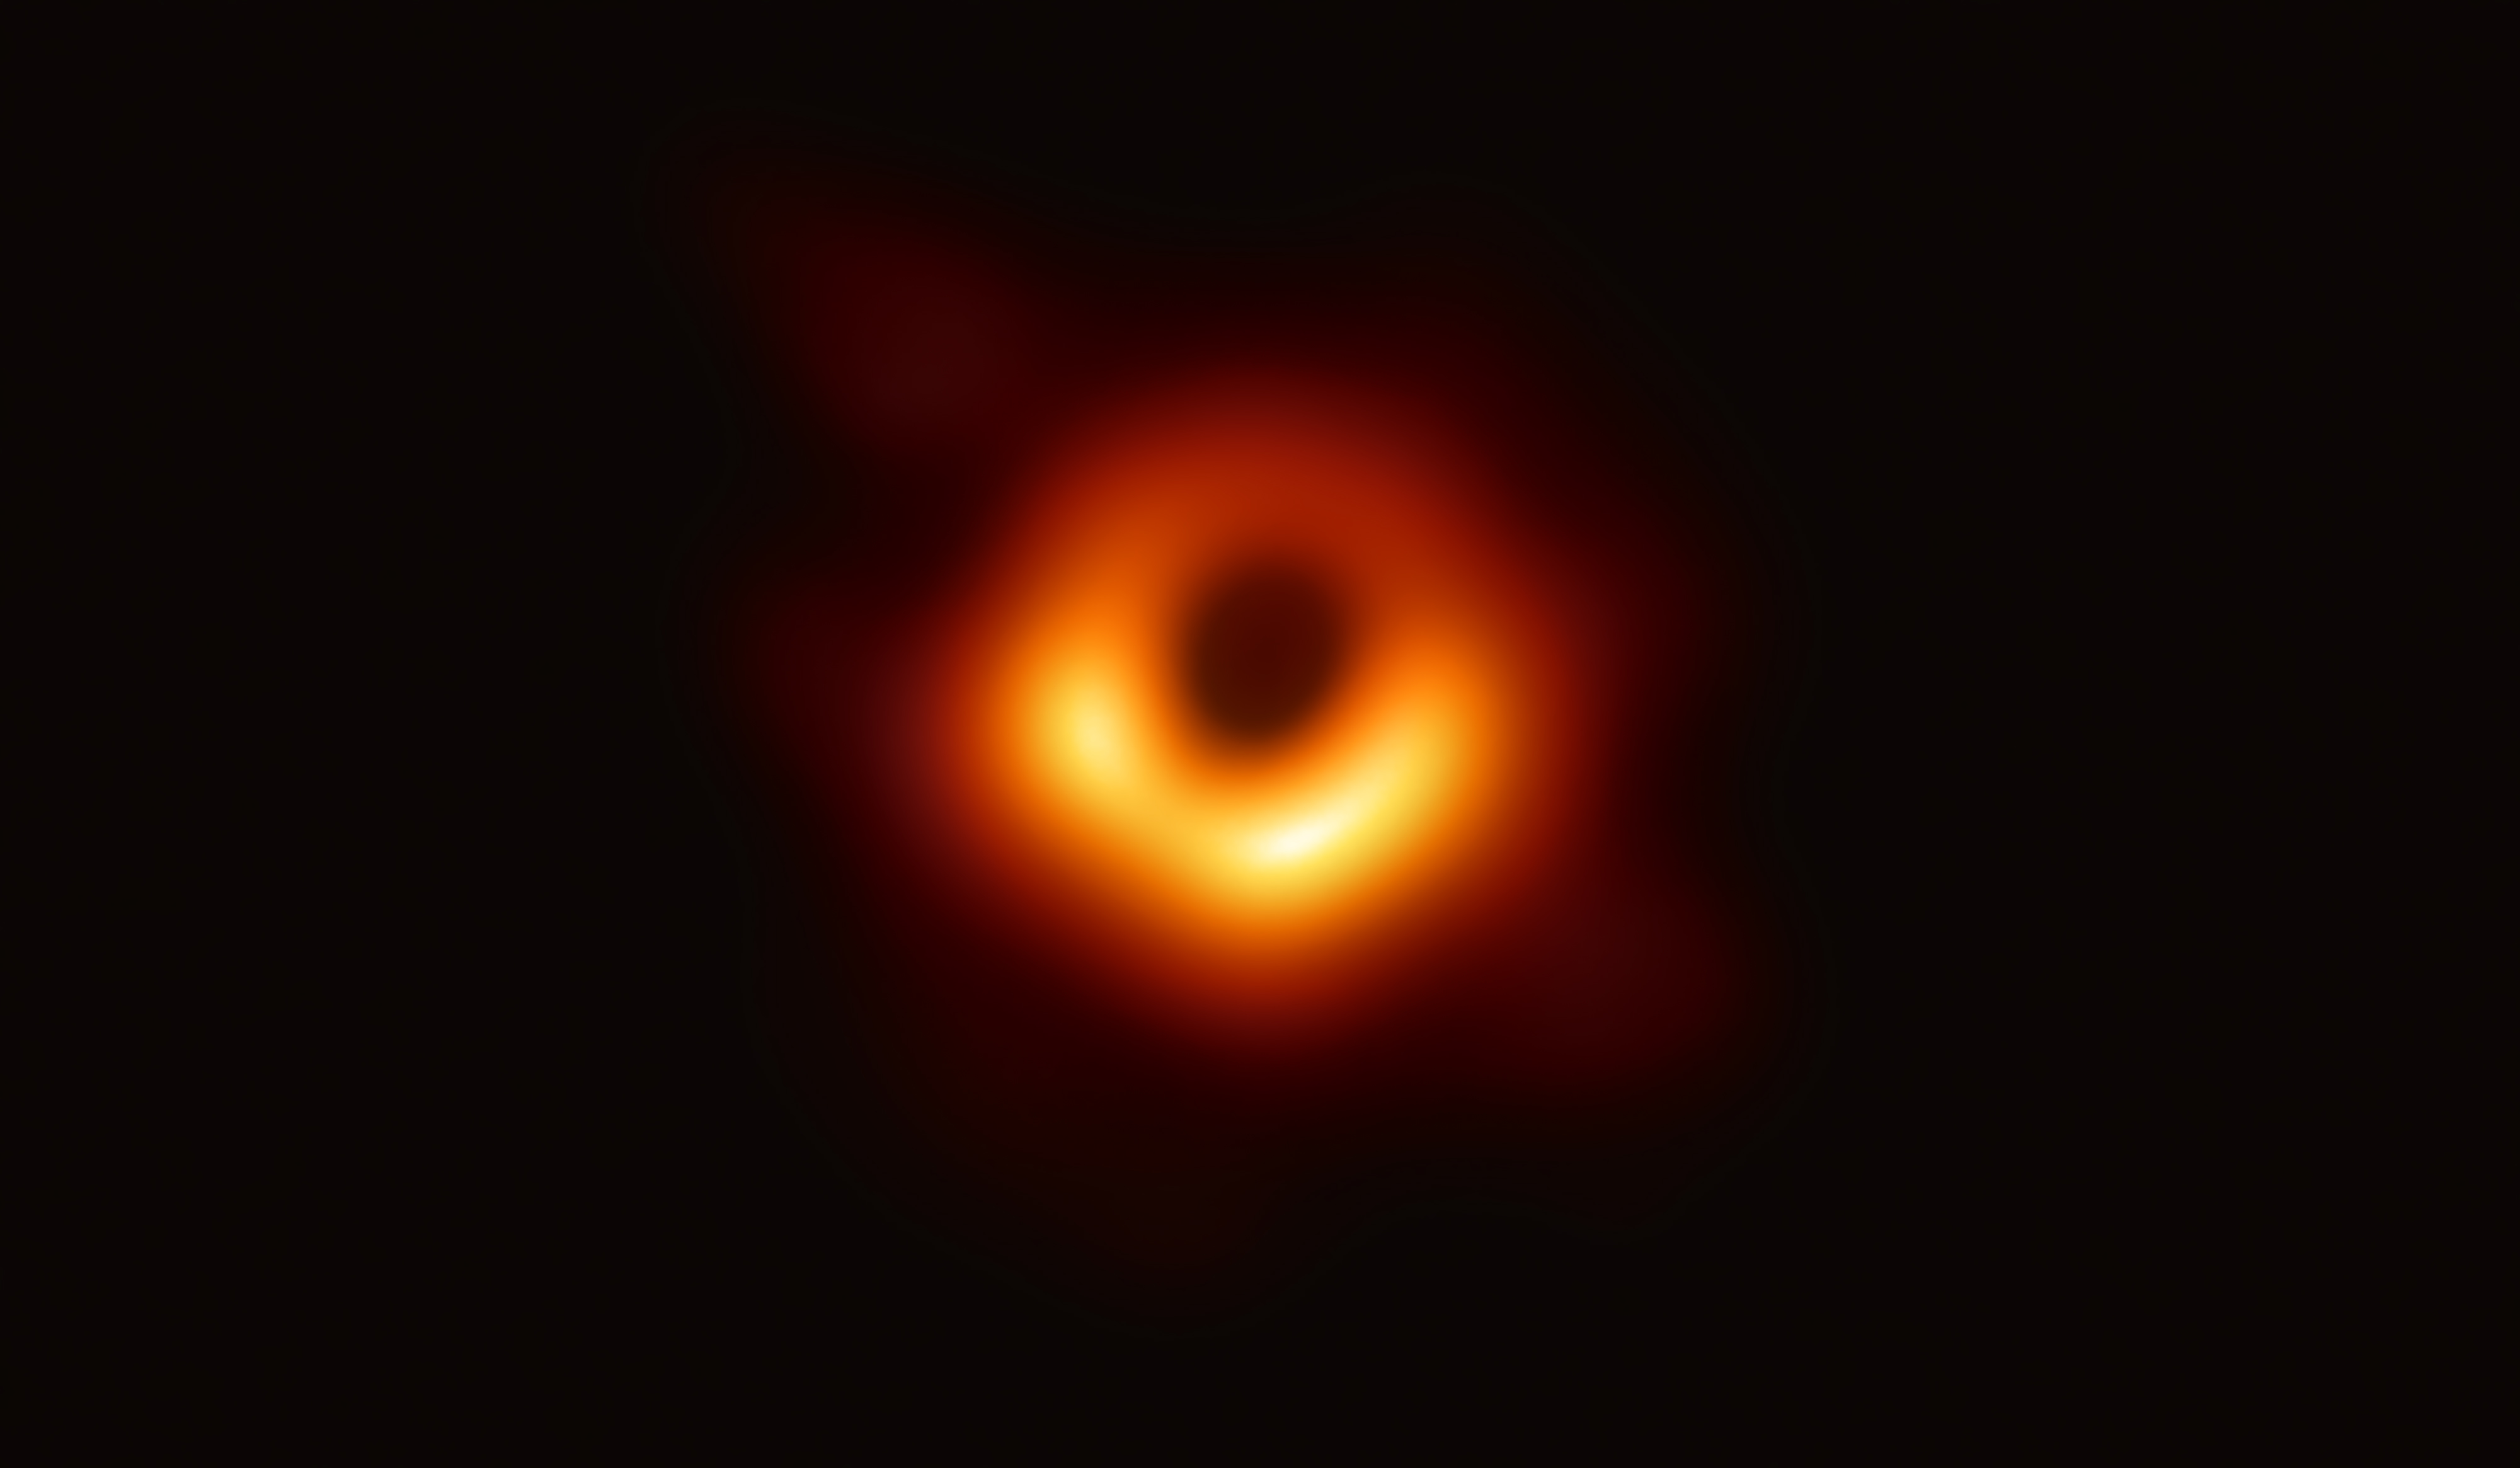 In Defense of the Blurry Black Hole Photo | The New Republic